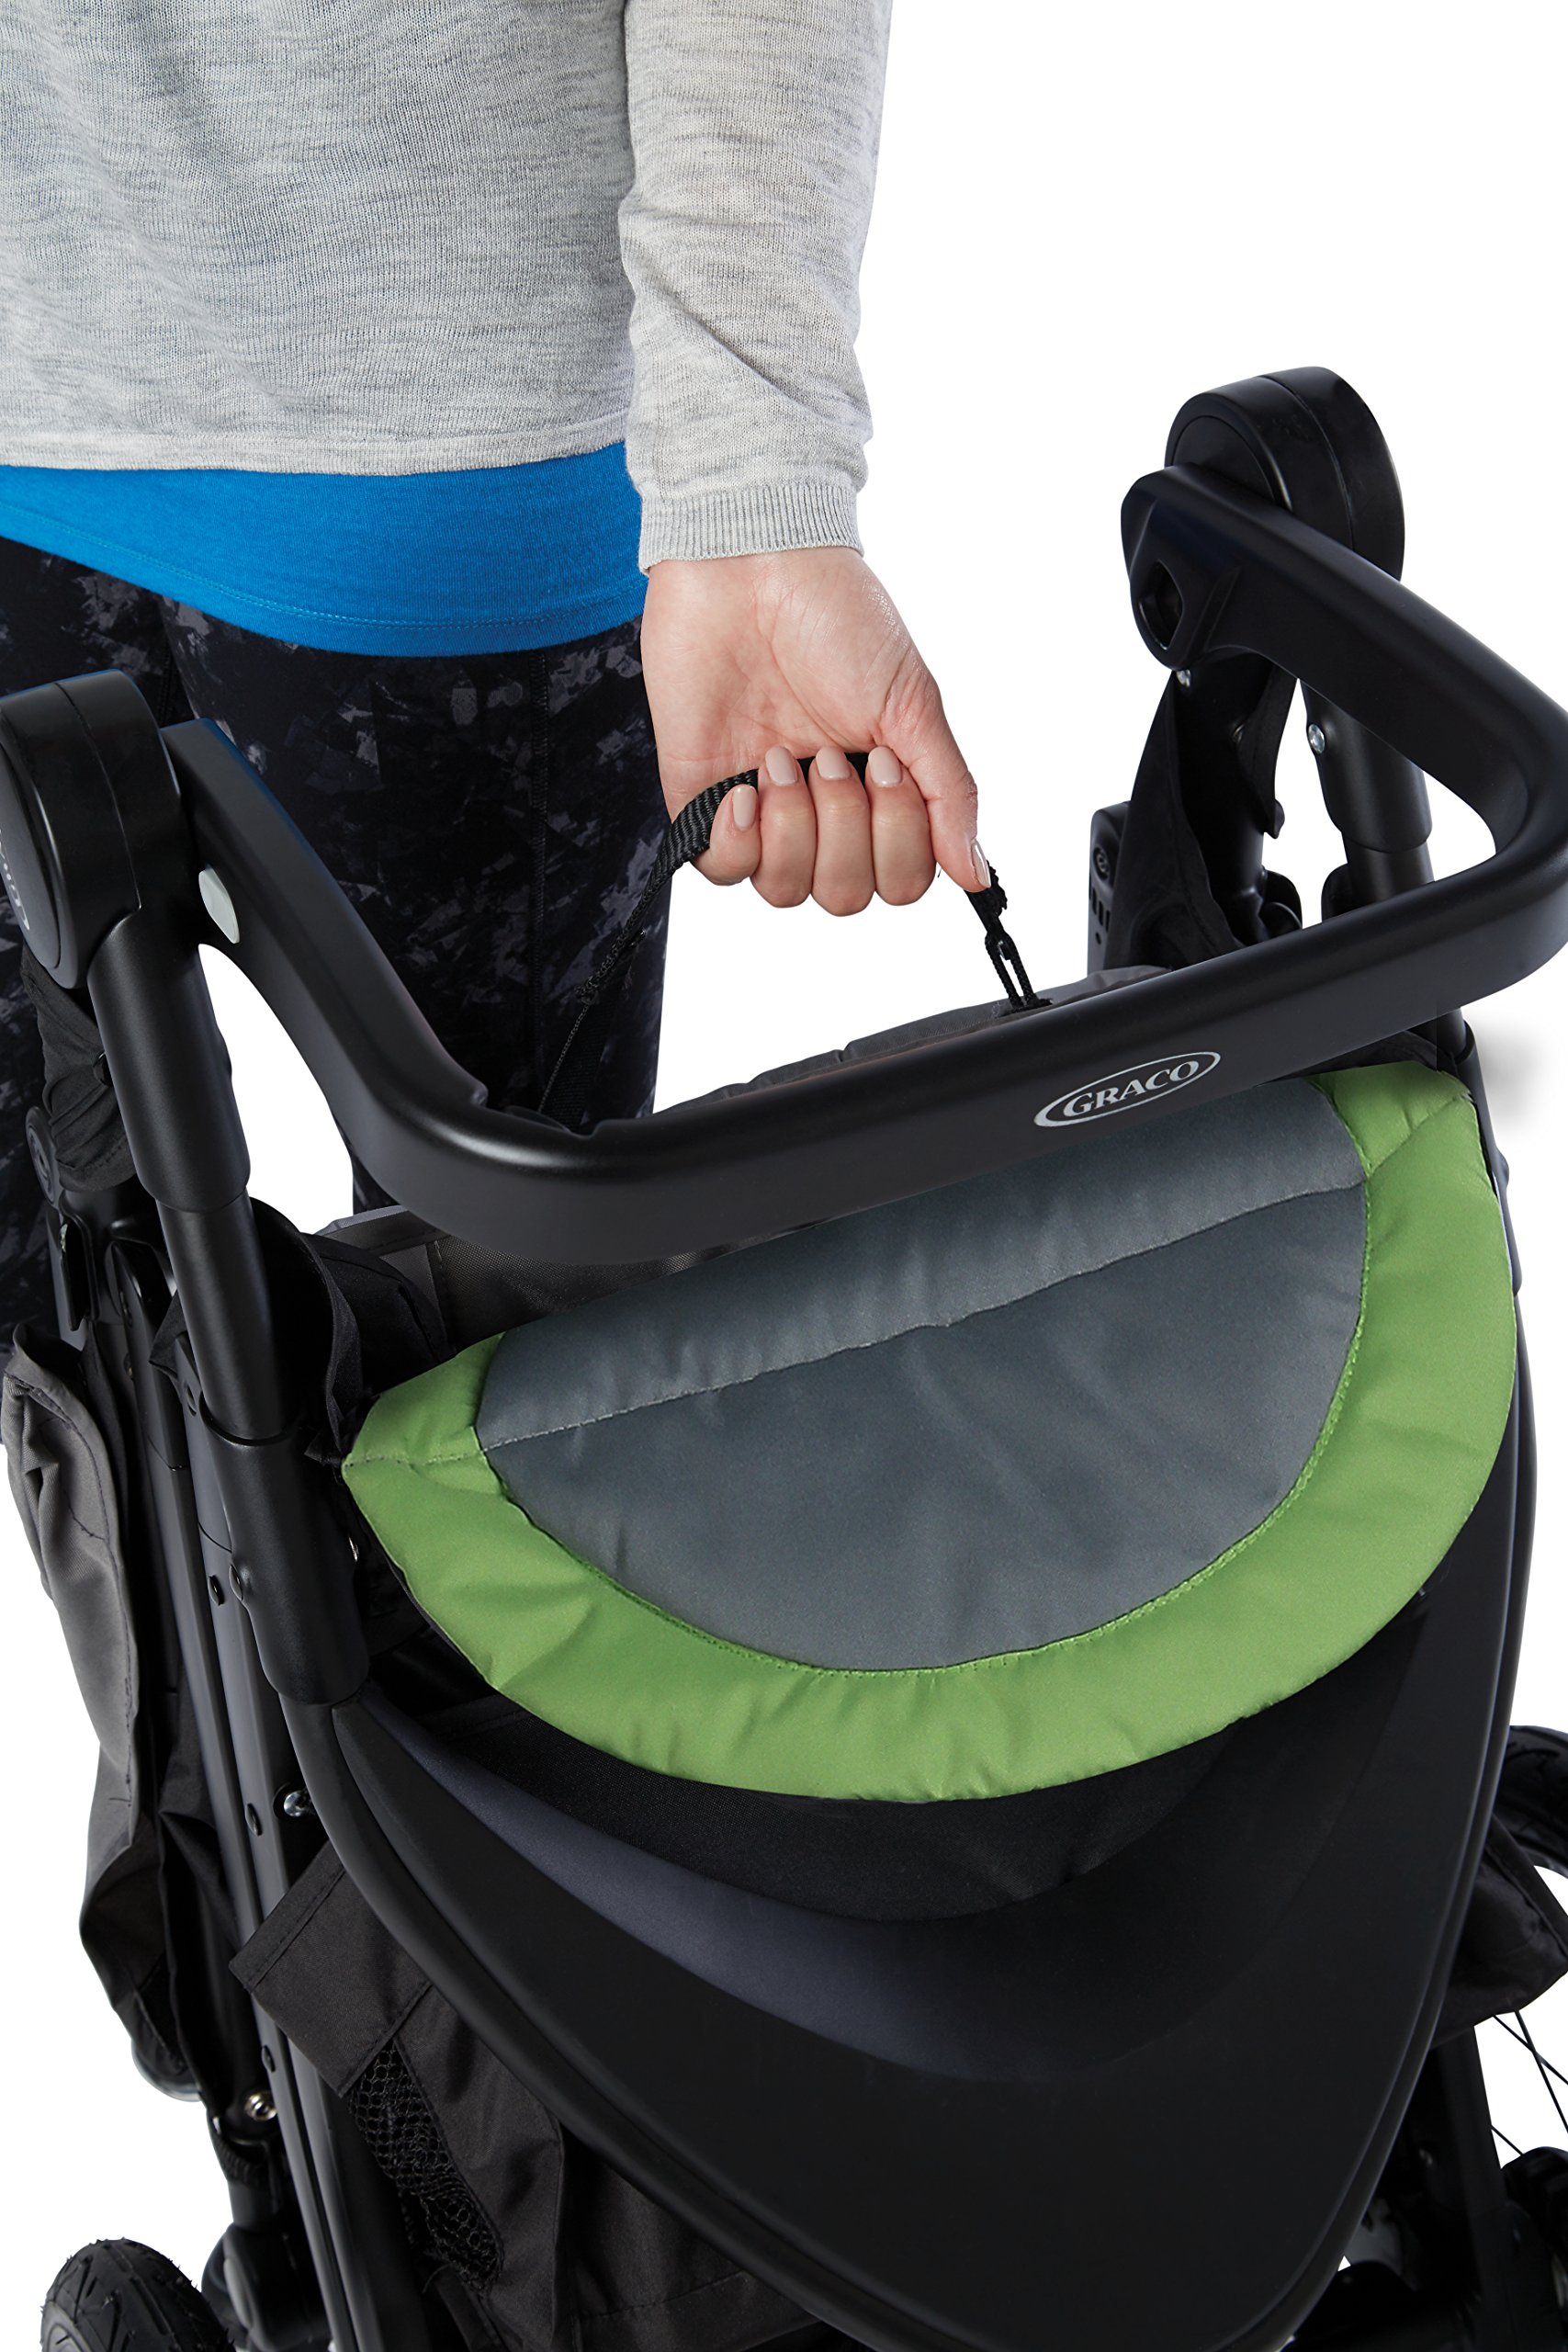 Graco RoadMaster Jogging Stroller, Travel System, Hudson by Graco (Image #7)